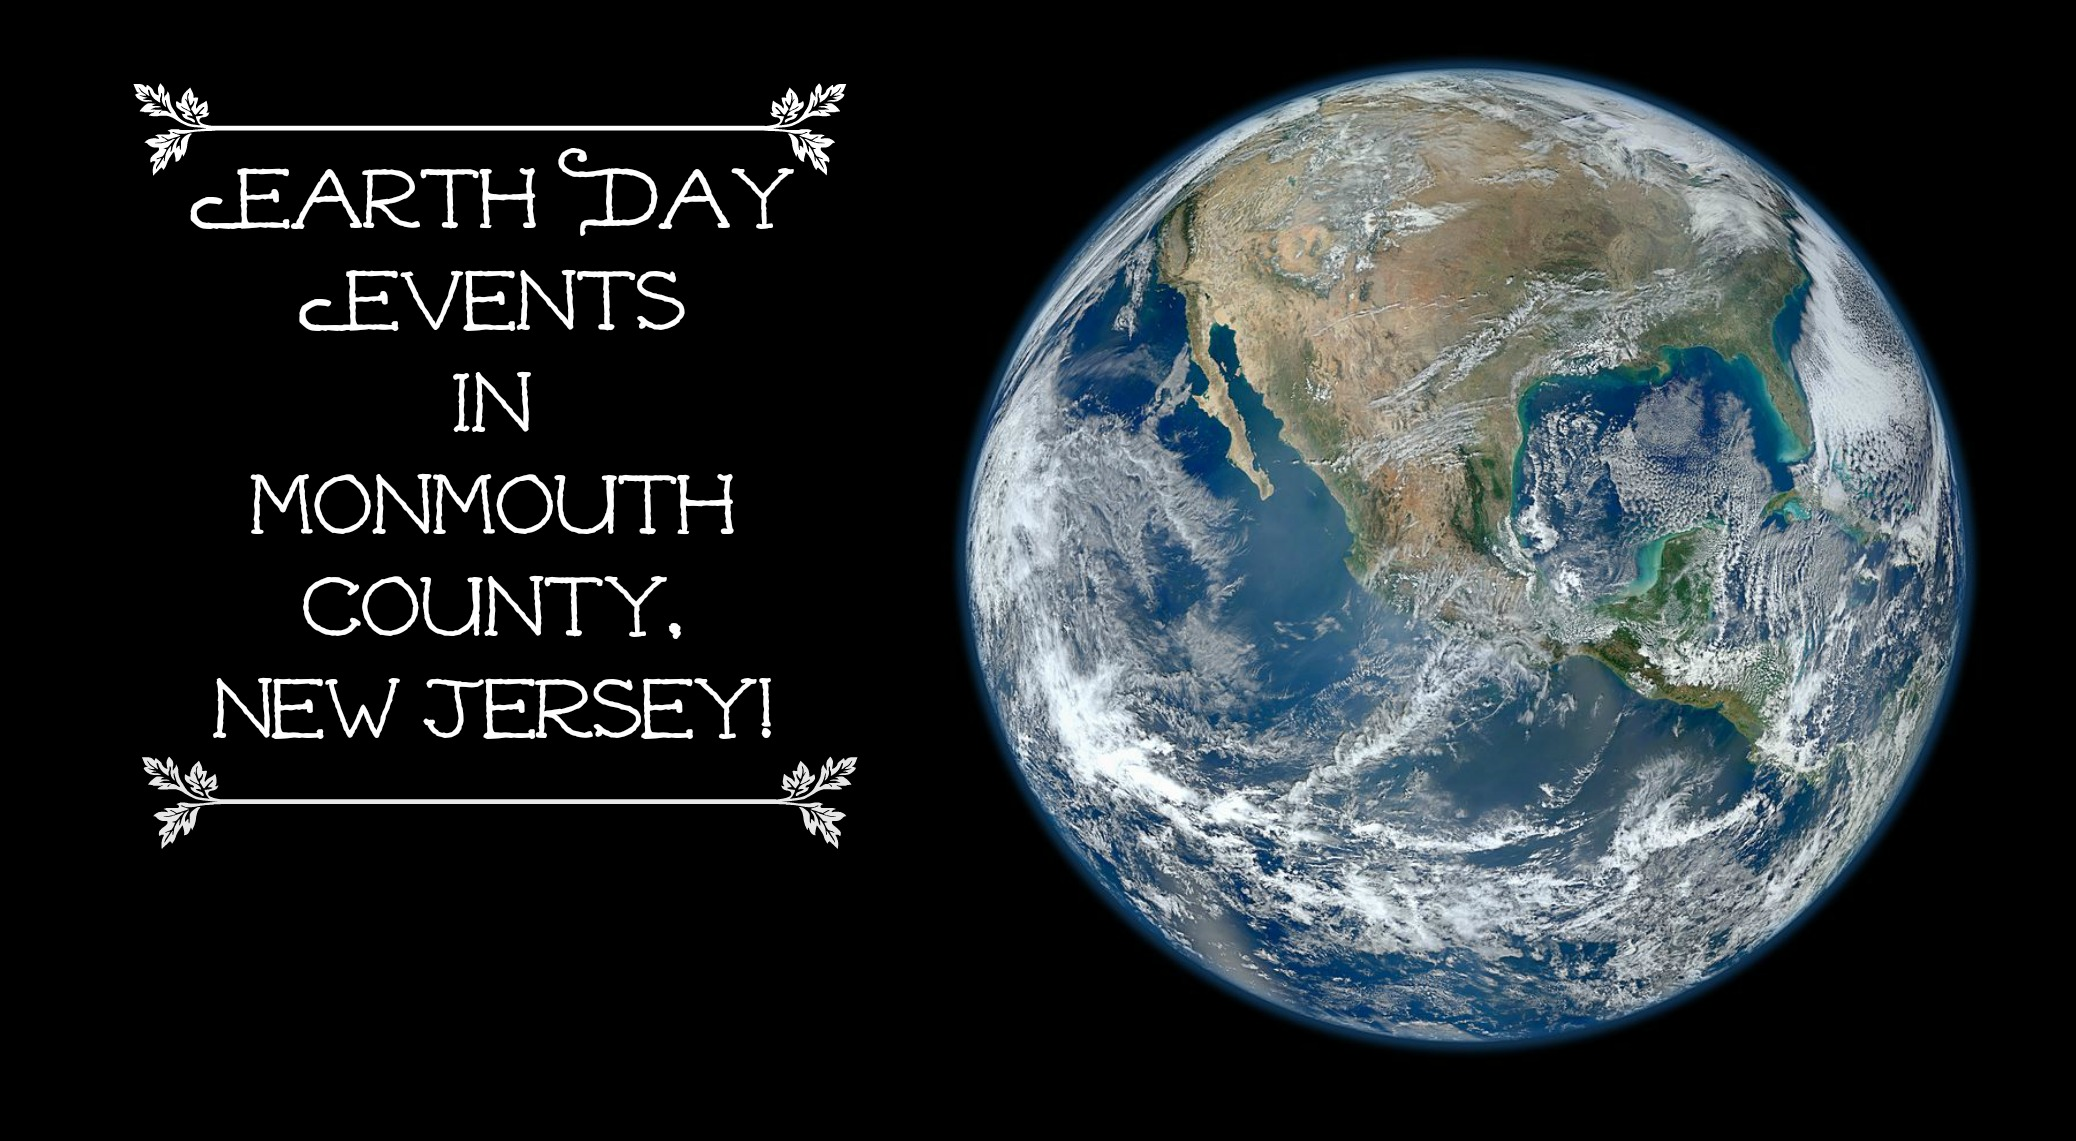 Earth Day Monmouth County